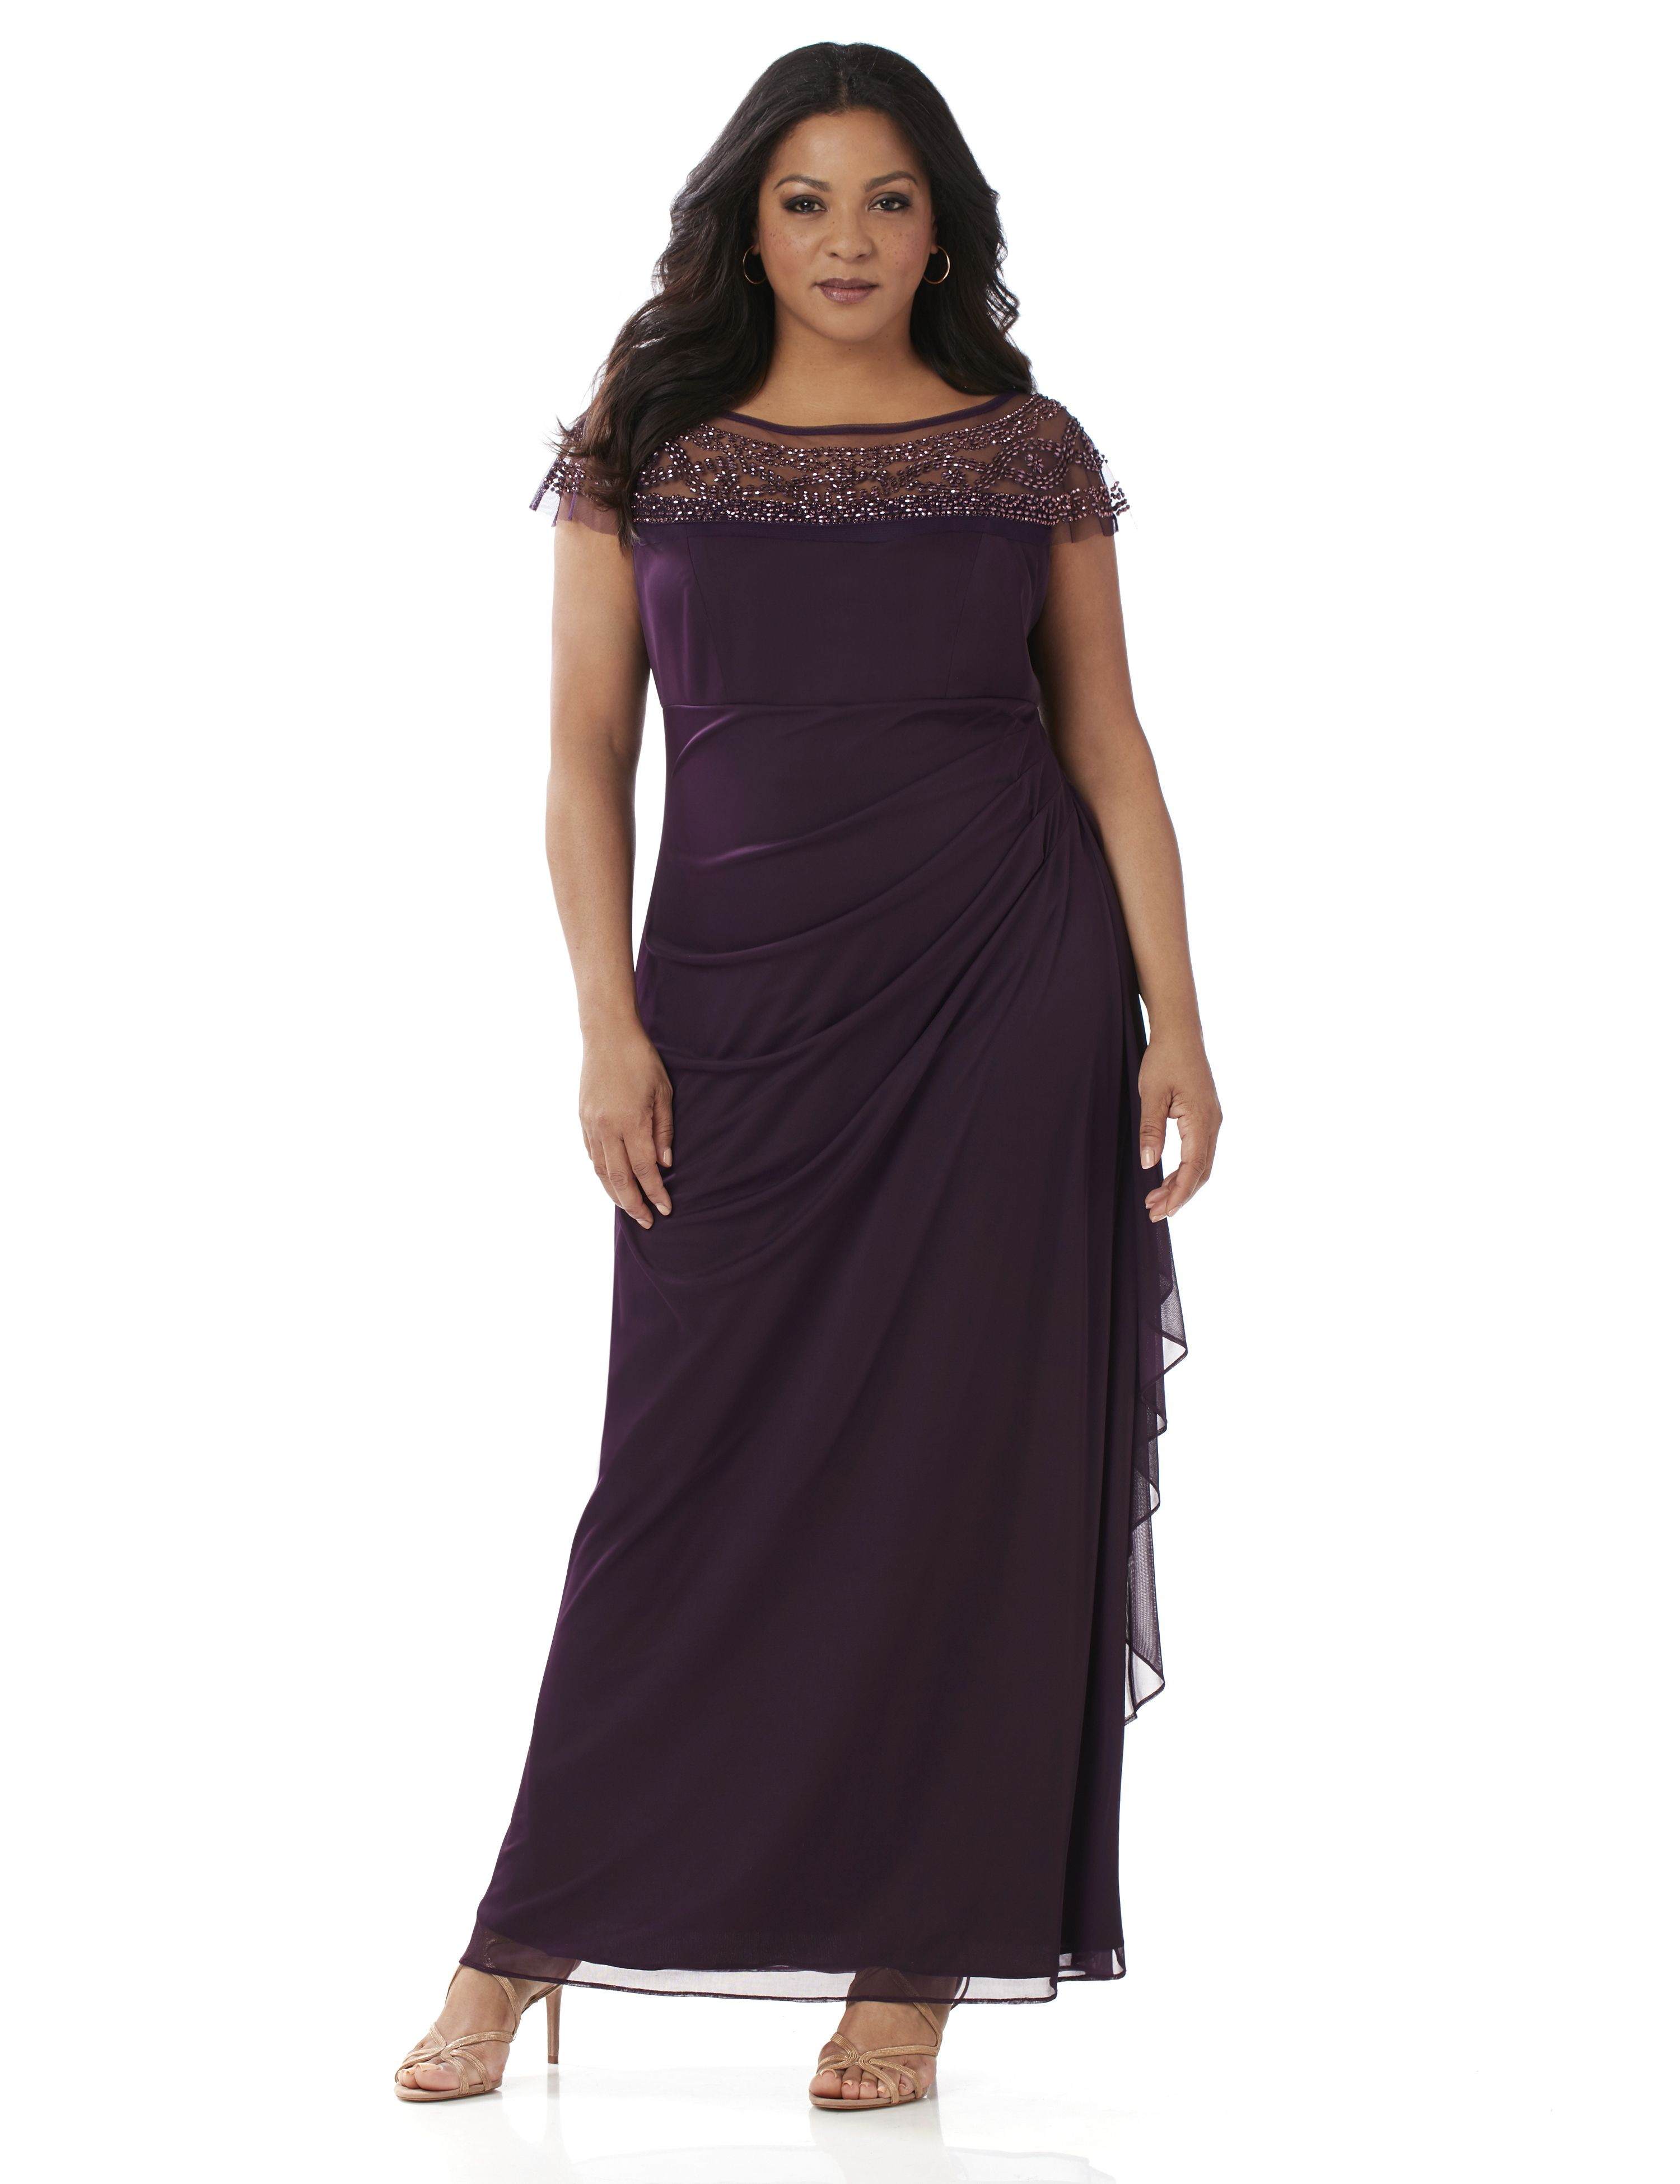 Plus Size Formal Dresses - Evening Dresses &amp Gowns  Catherines